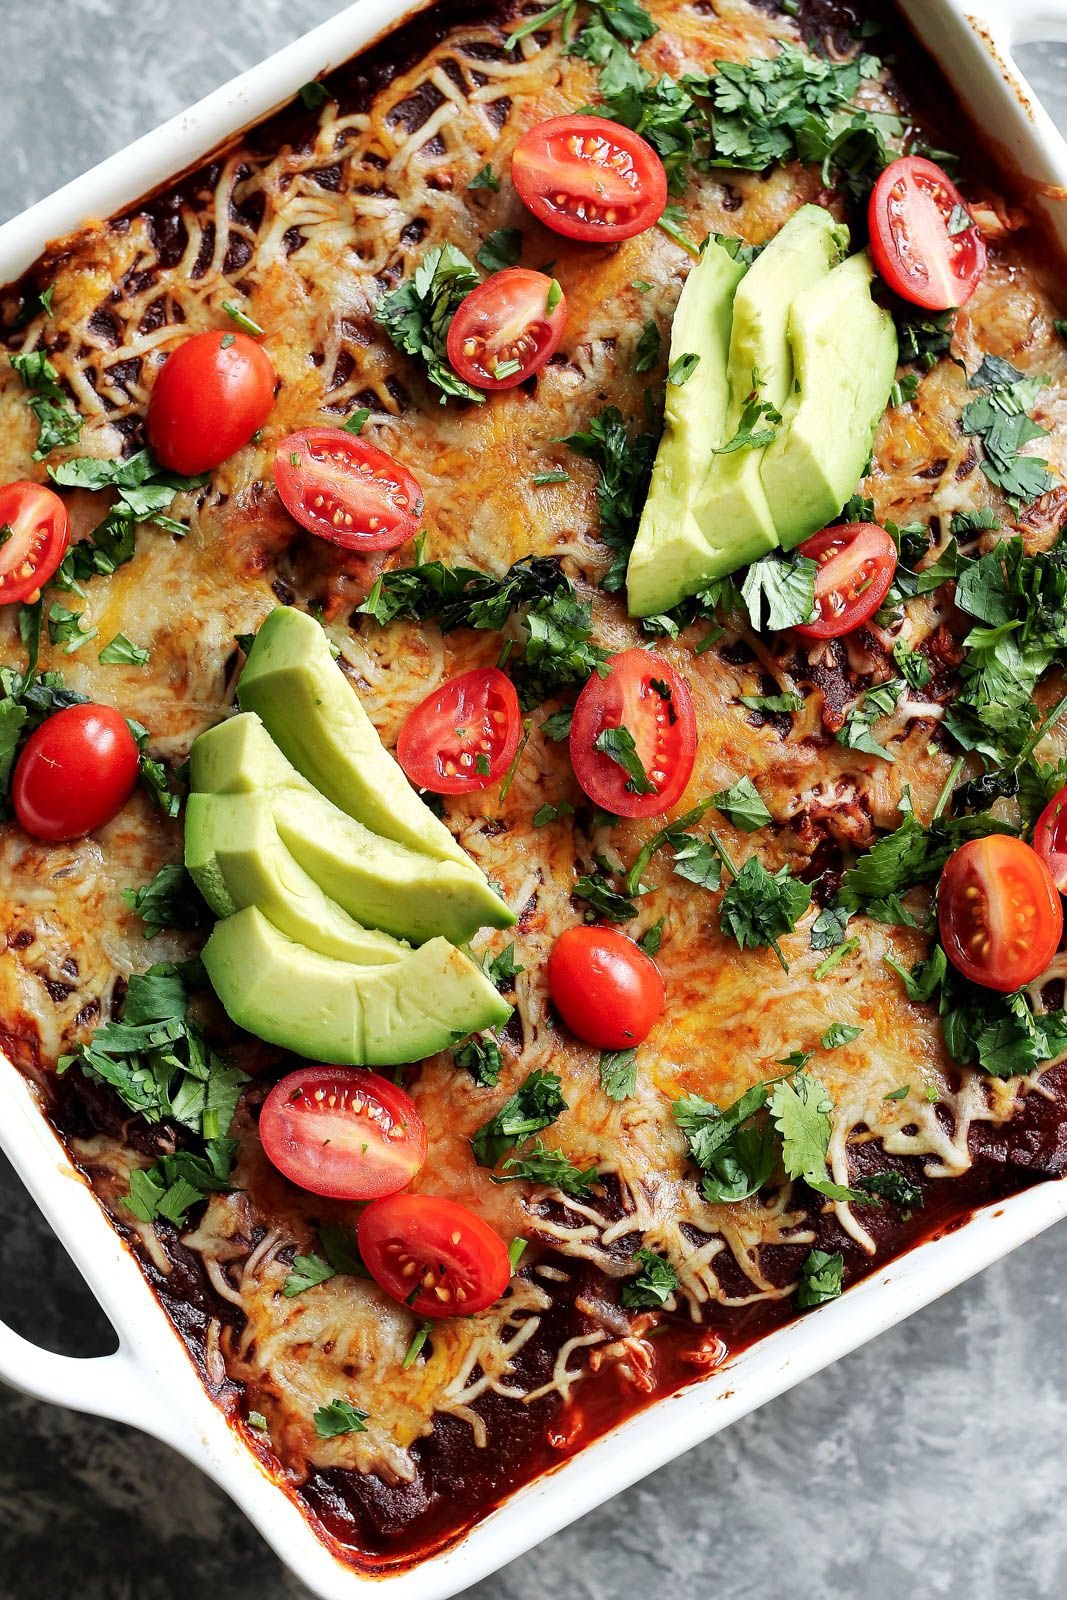 Low carb chicken zucchini enchilada bake with layers upon layers of creamy flavorful goodness Refried beans cheese chicken zucchini and a homemade enchilada sauce